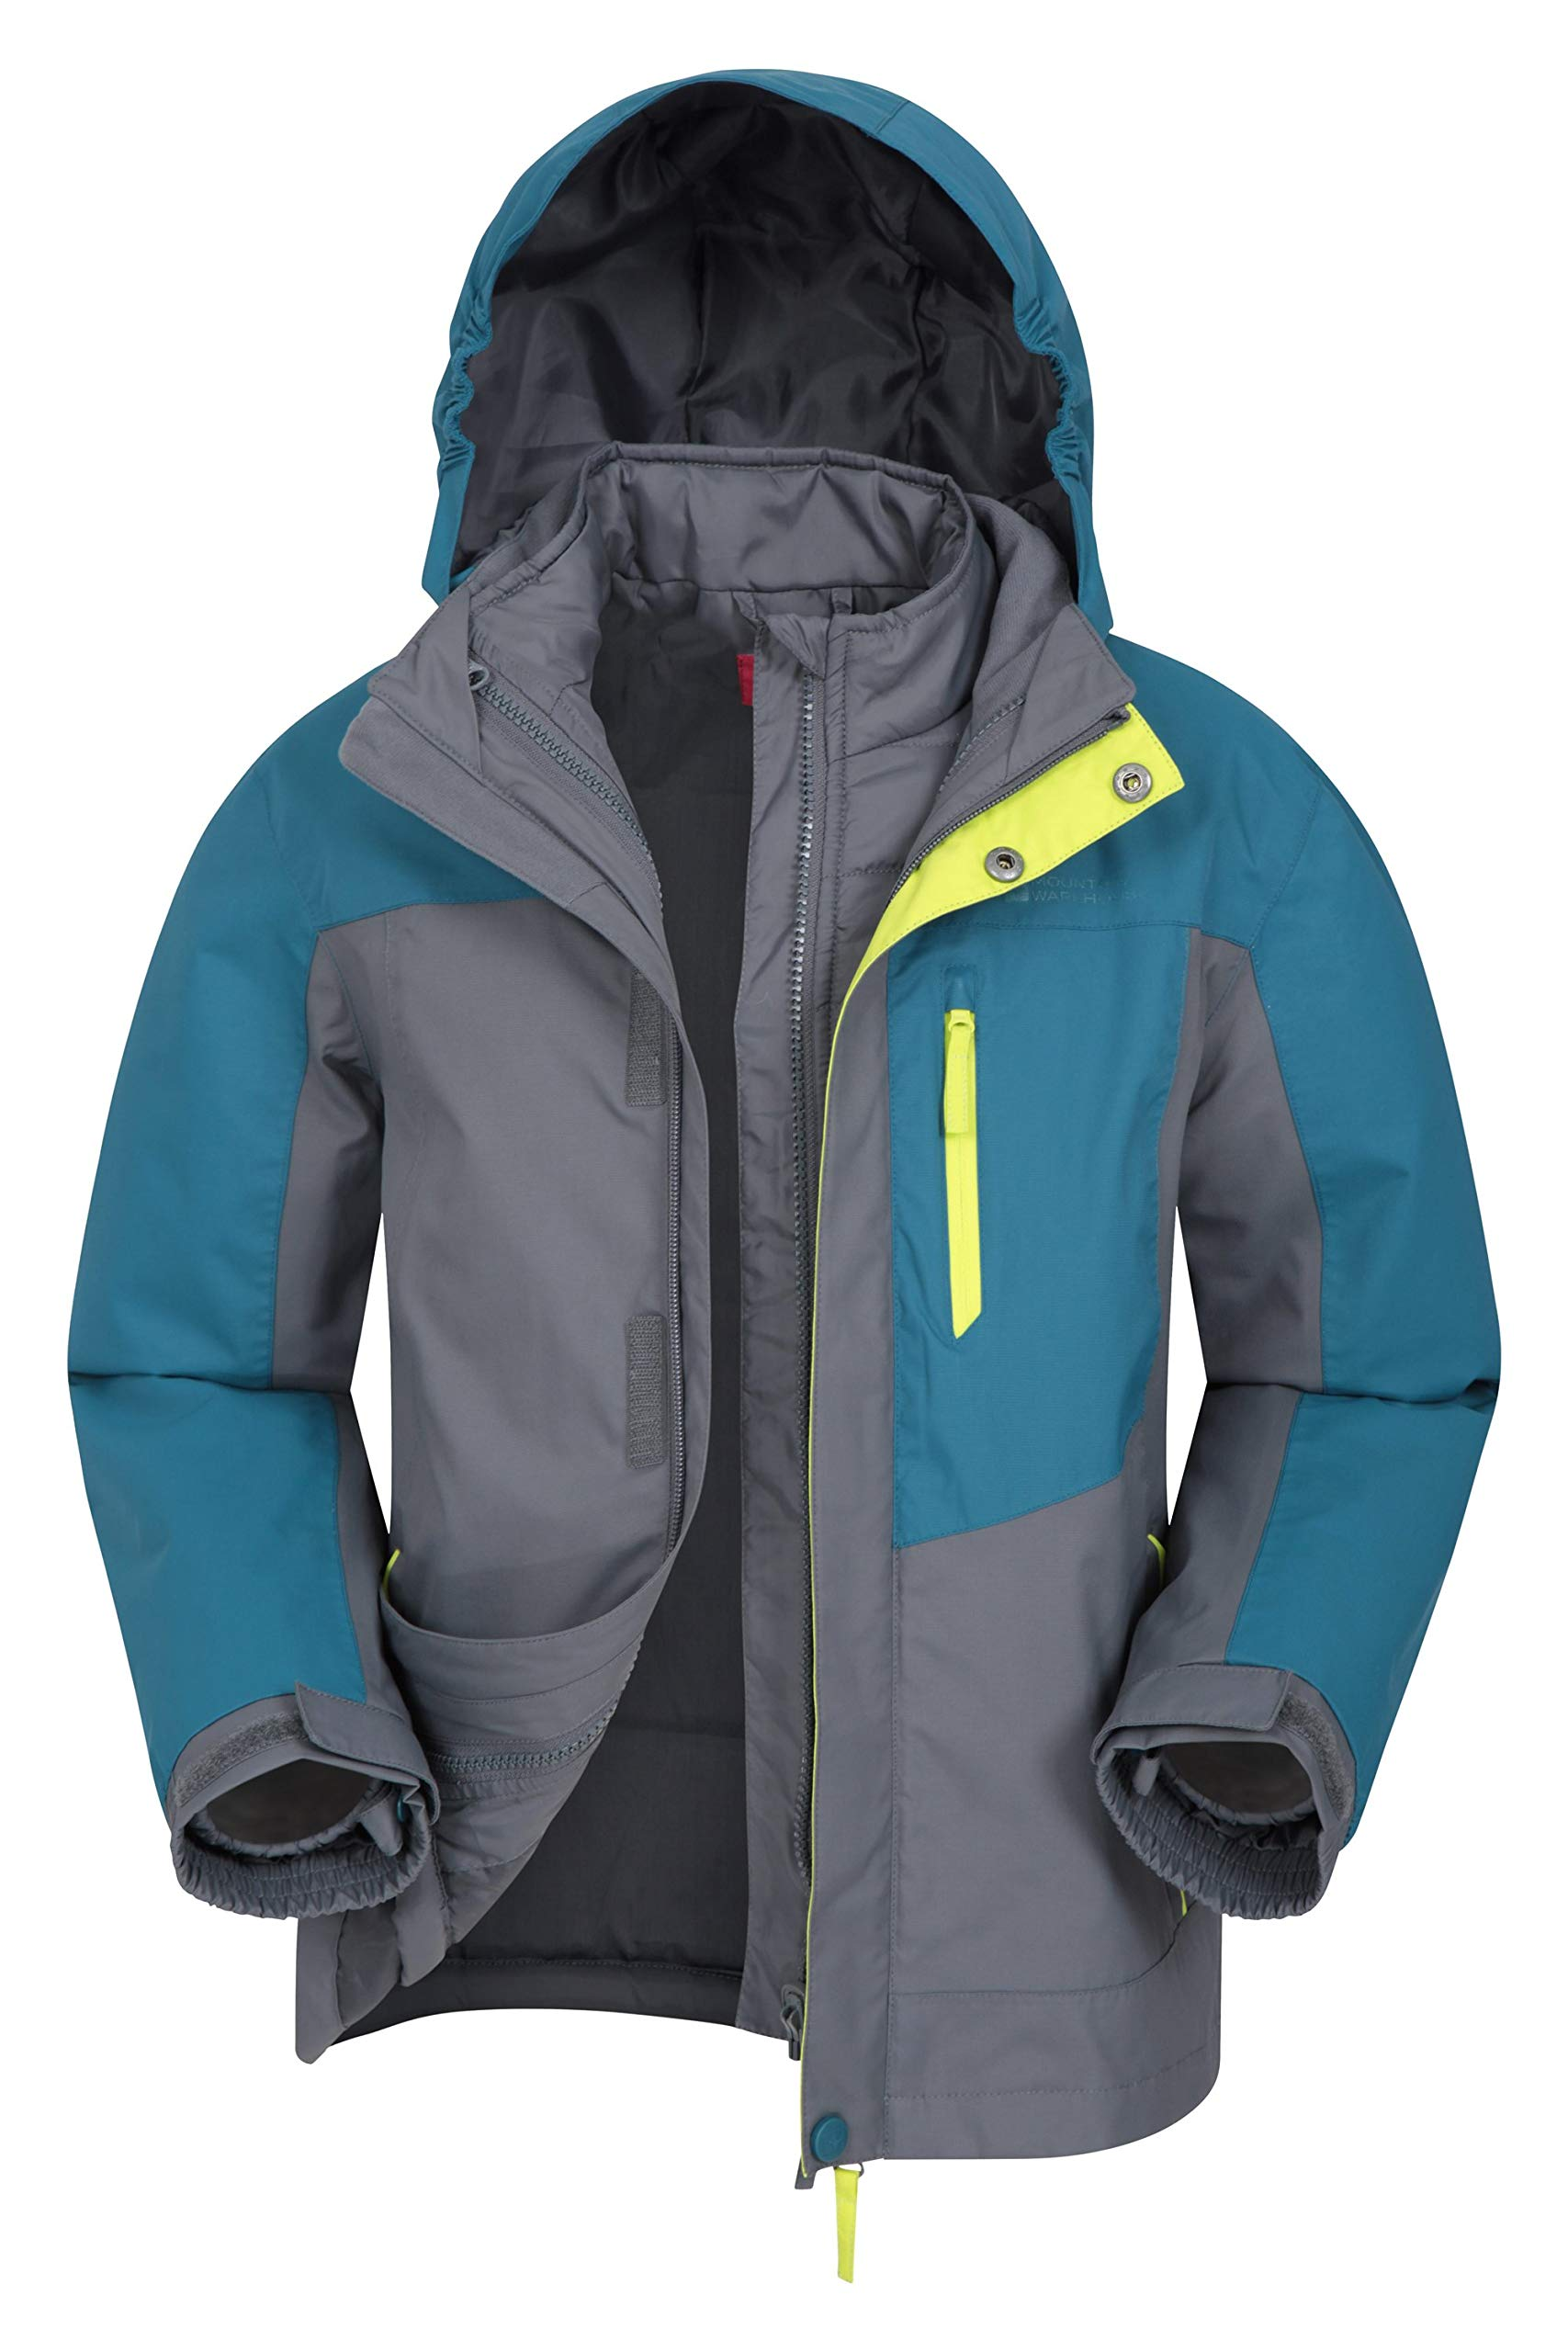 Mountain Warehouse Compass Youth 3 in 1 Rain Jacket -Kids Winter Coat Petrol Blue 11-12 Years by Mountain Warehouse